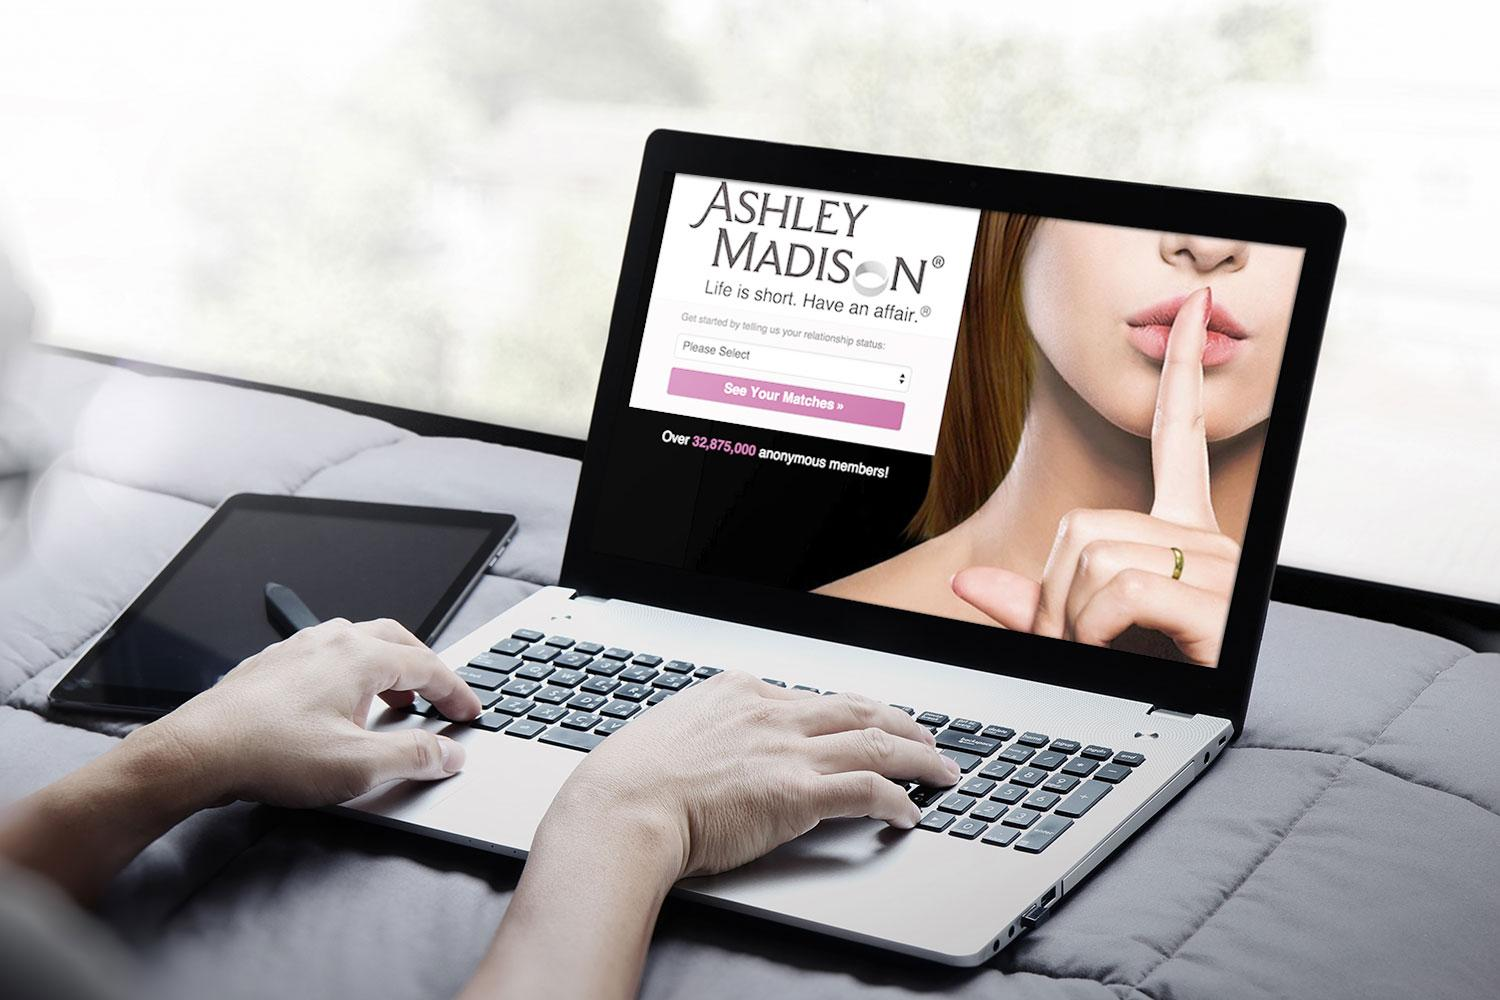 The Ashley Madison cheaters list is now searchable online ...